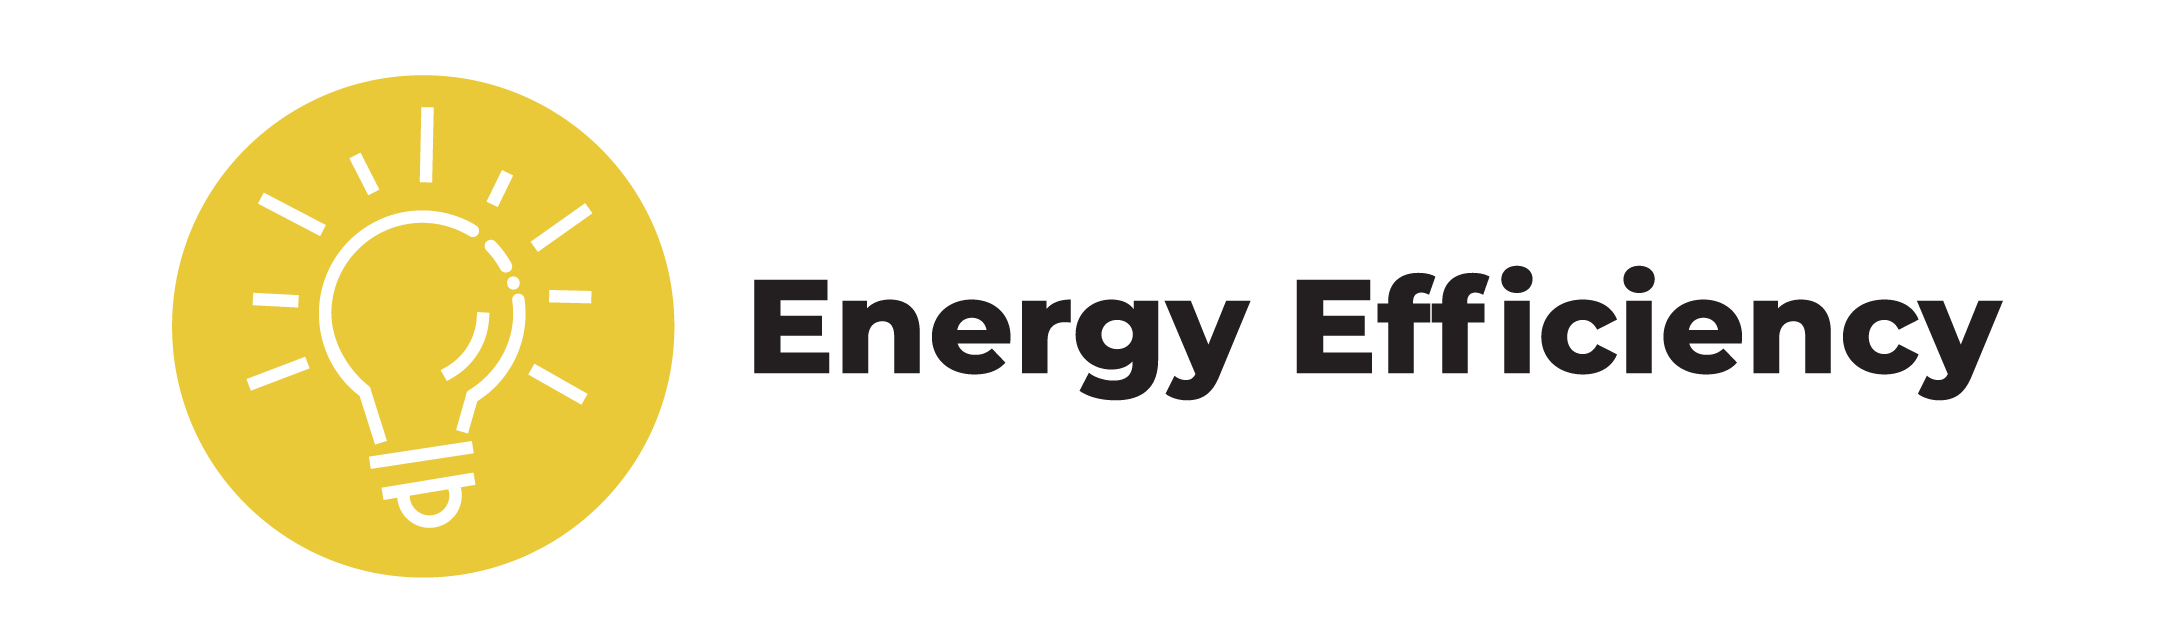 OSI_ICON_Energy Efficiency